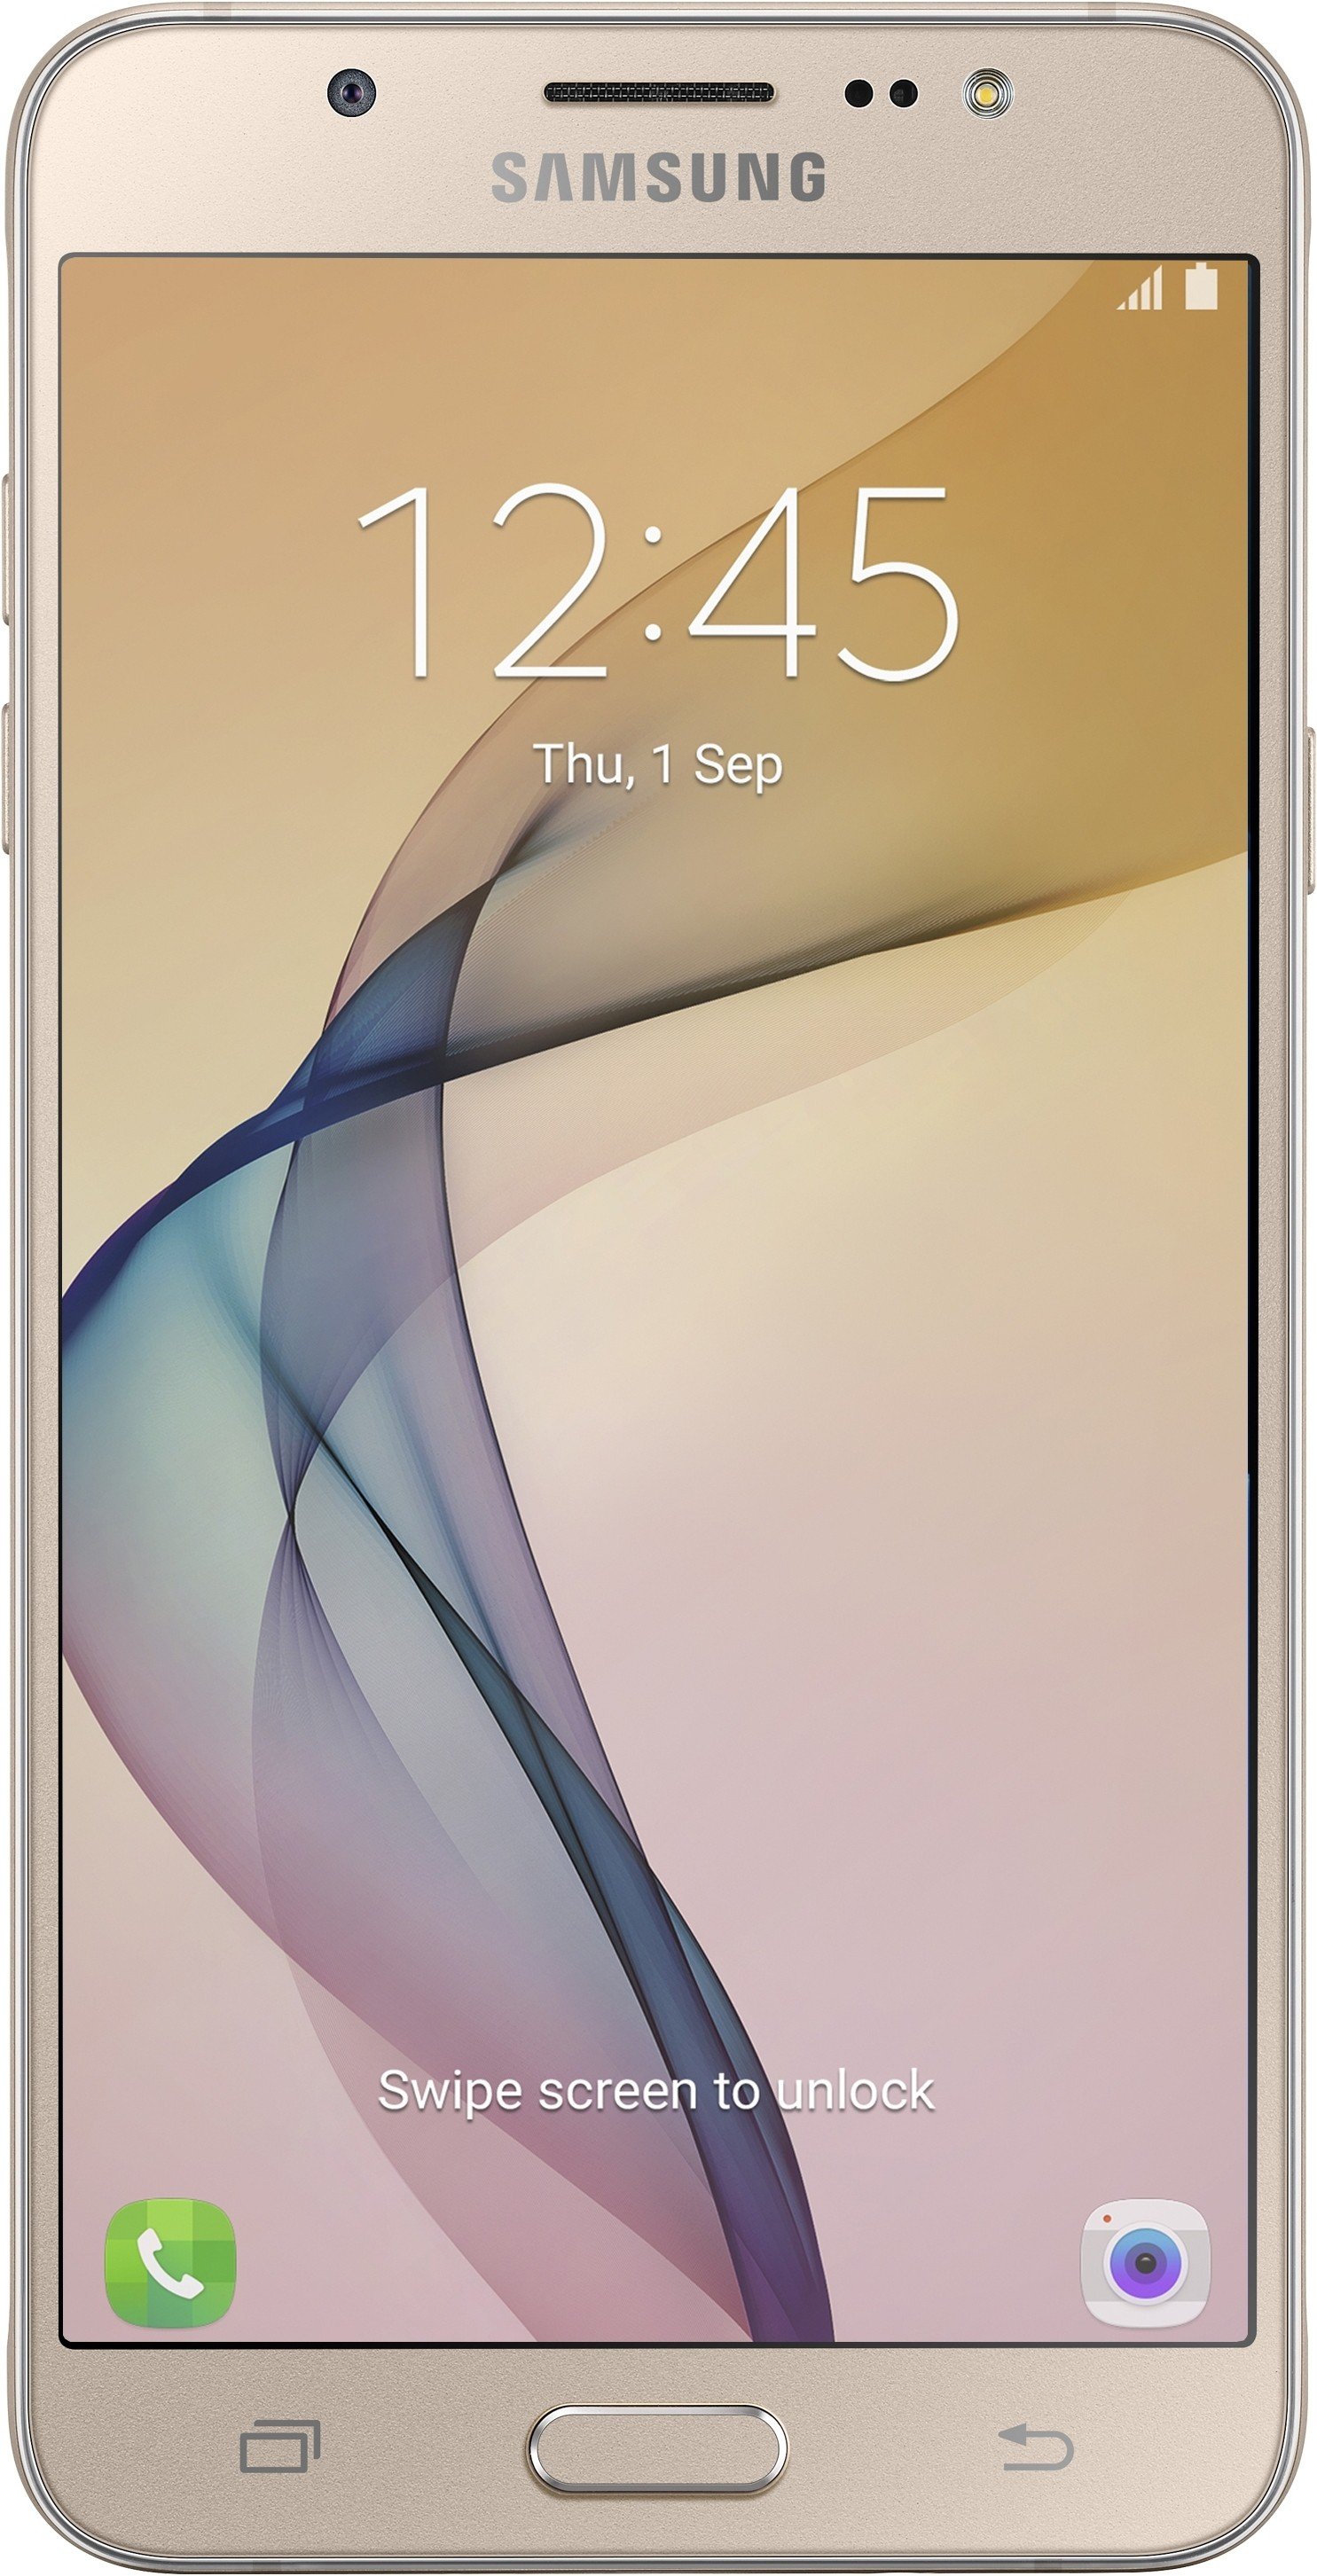 Deals - Bangalore - Samsung On 8 <br> Now ₹15,400<br> Category - mobiles_and_accessories<br> Business - Flipkart.com